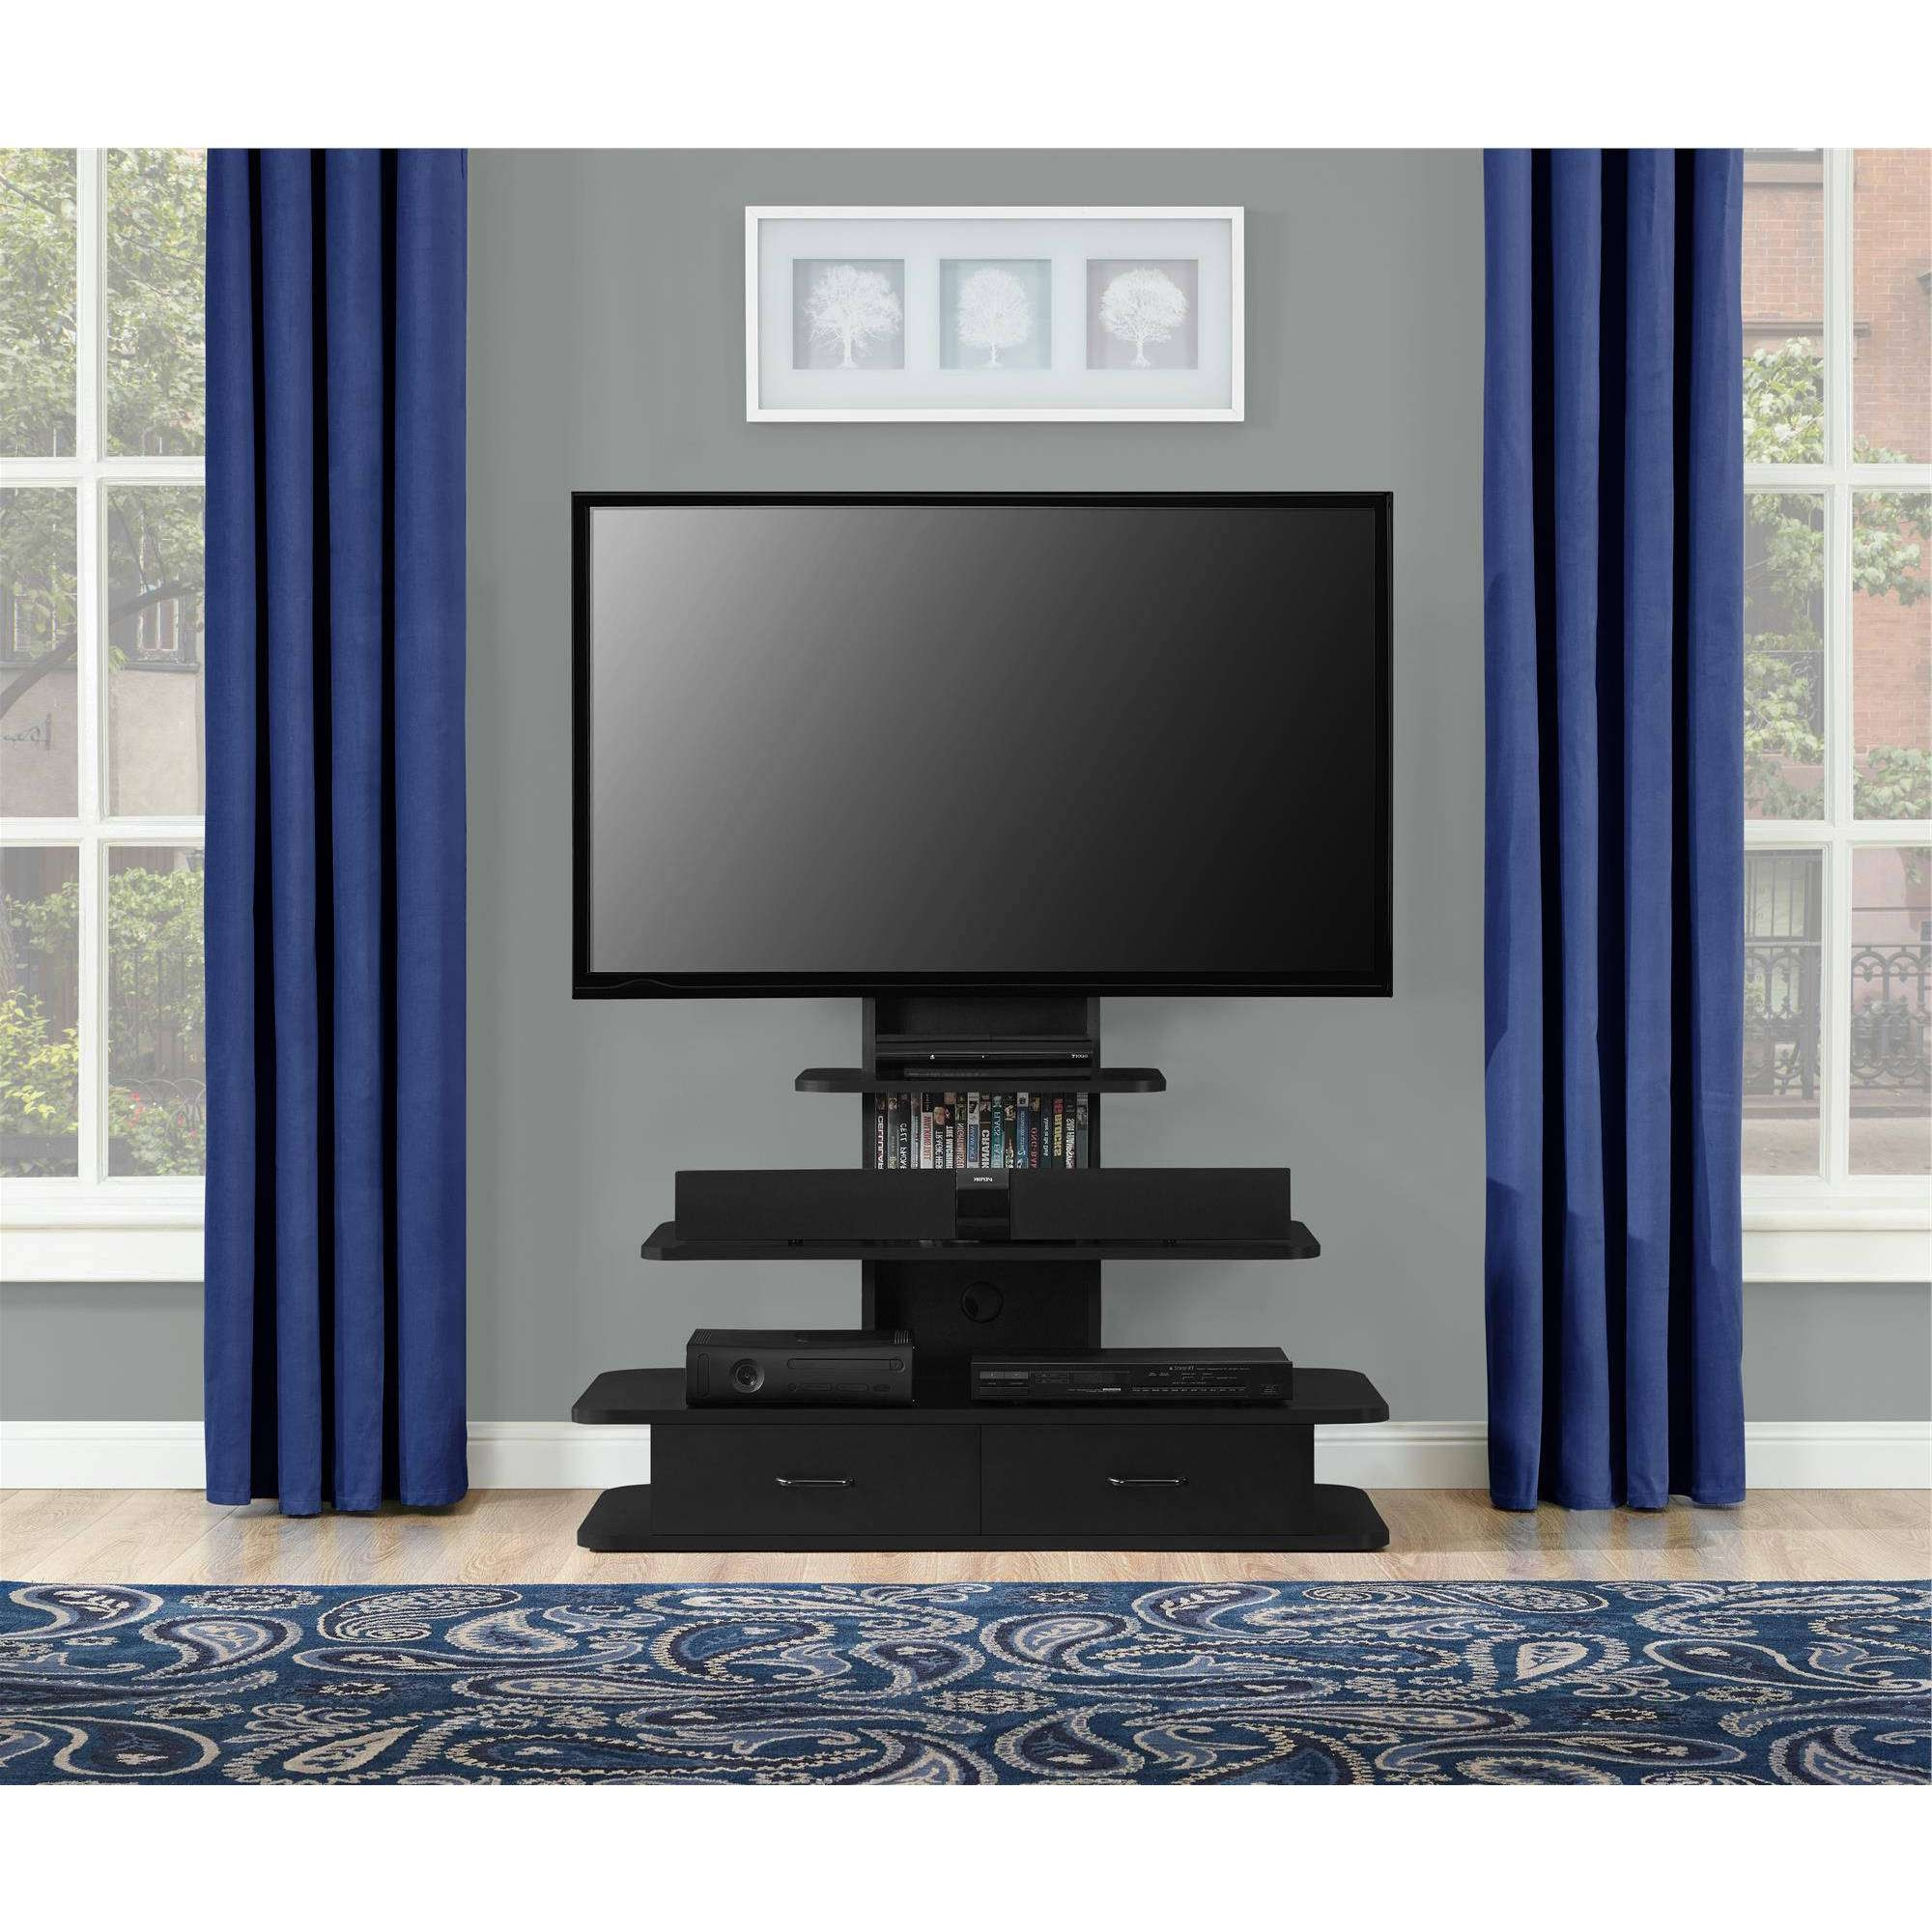 Ameriwood Home Galaxy Xl Tv Stand With Drawers For Tvs Up To 70 Within Tv Stands For 70 Inch Tvs (View 3 of 20)